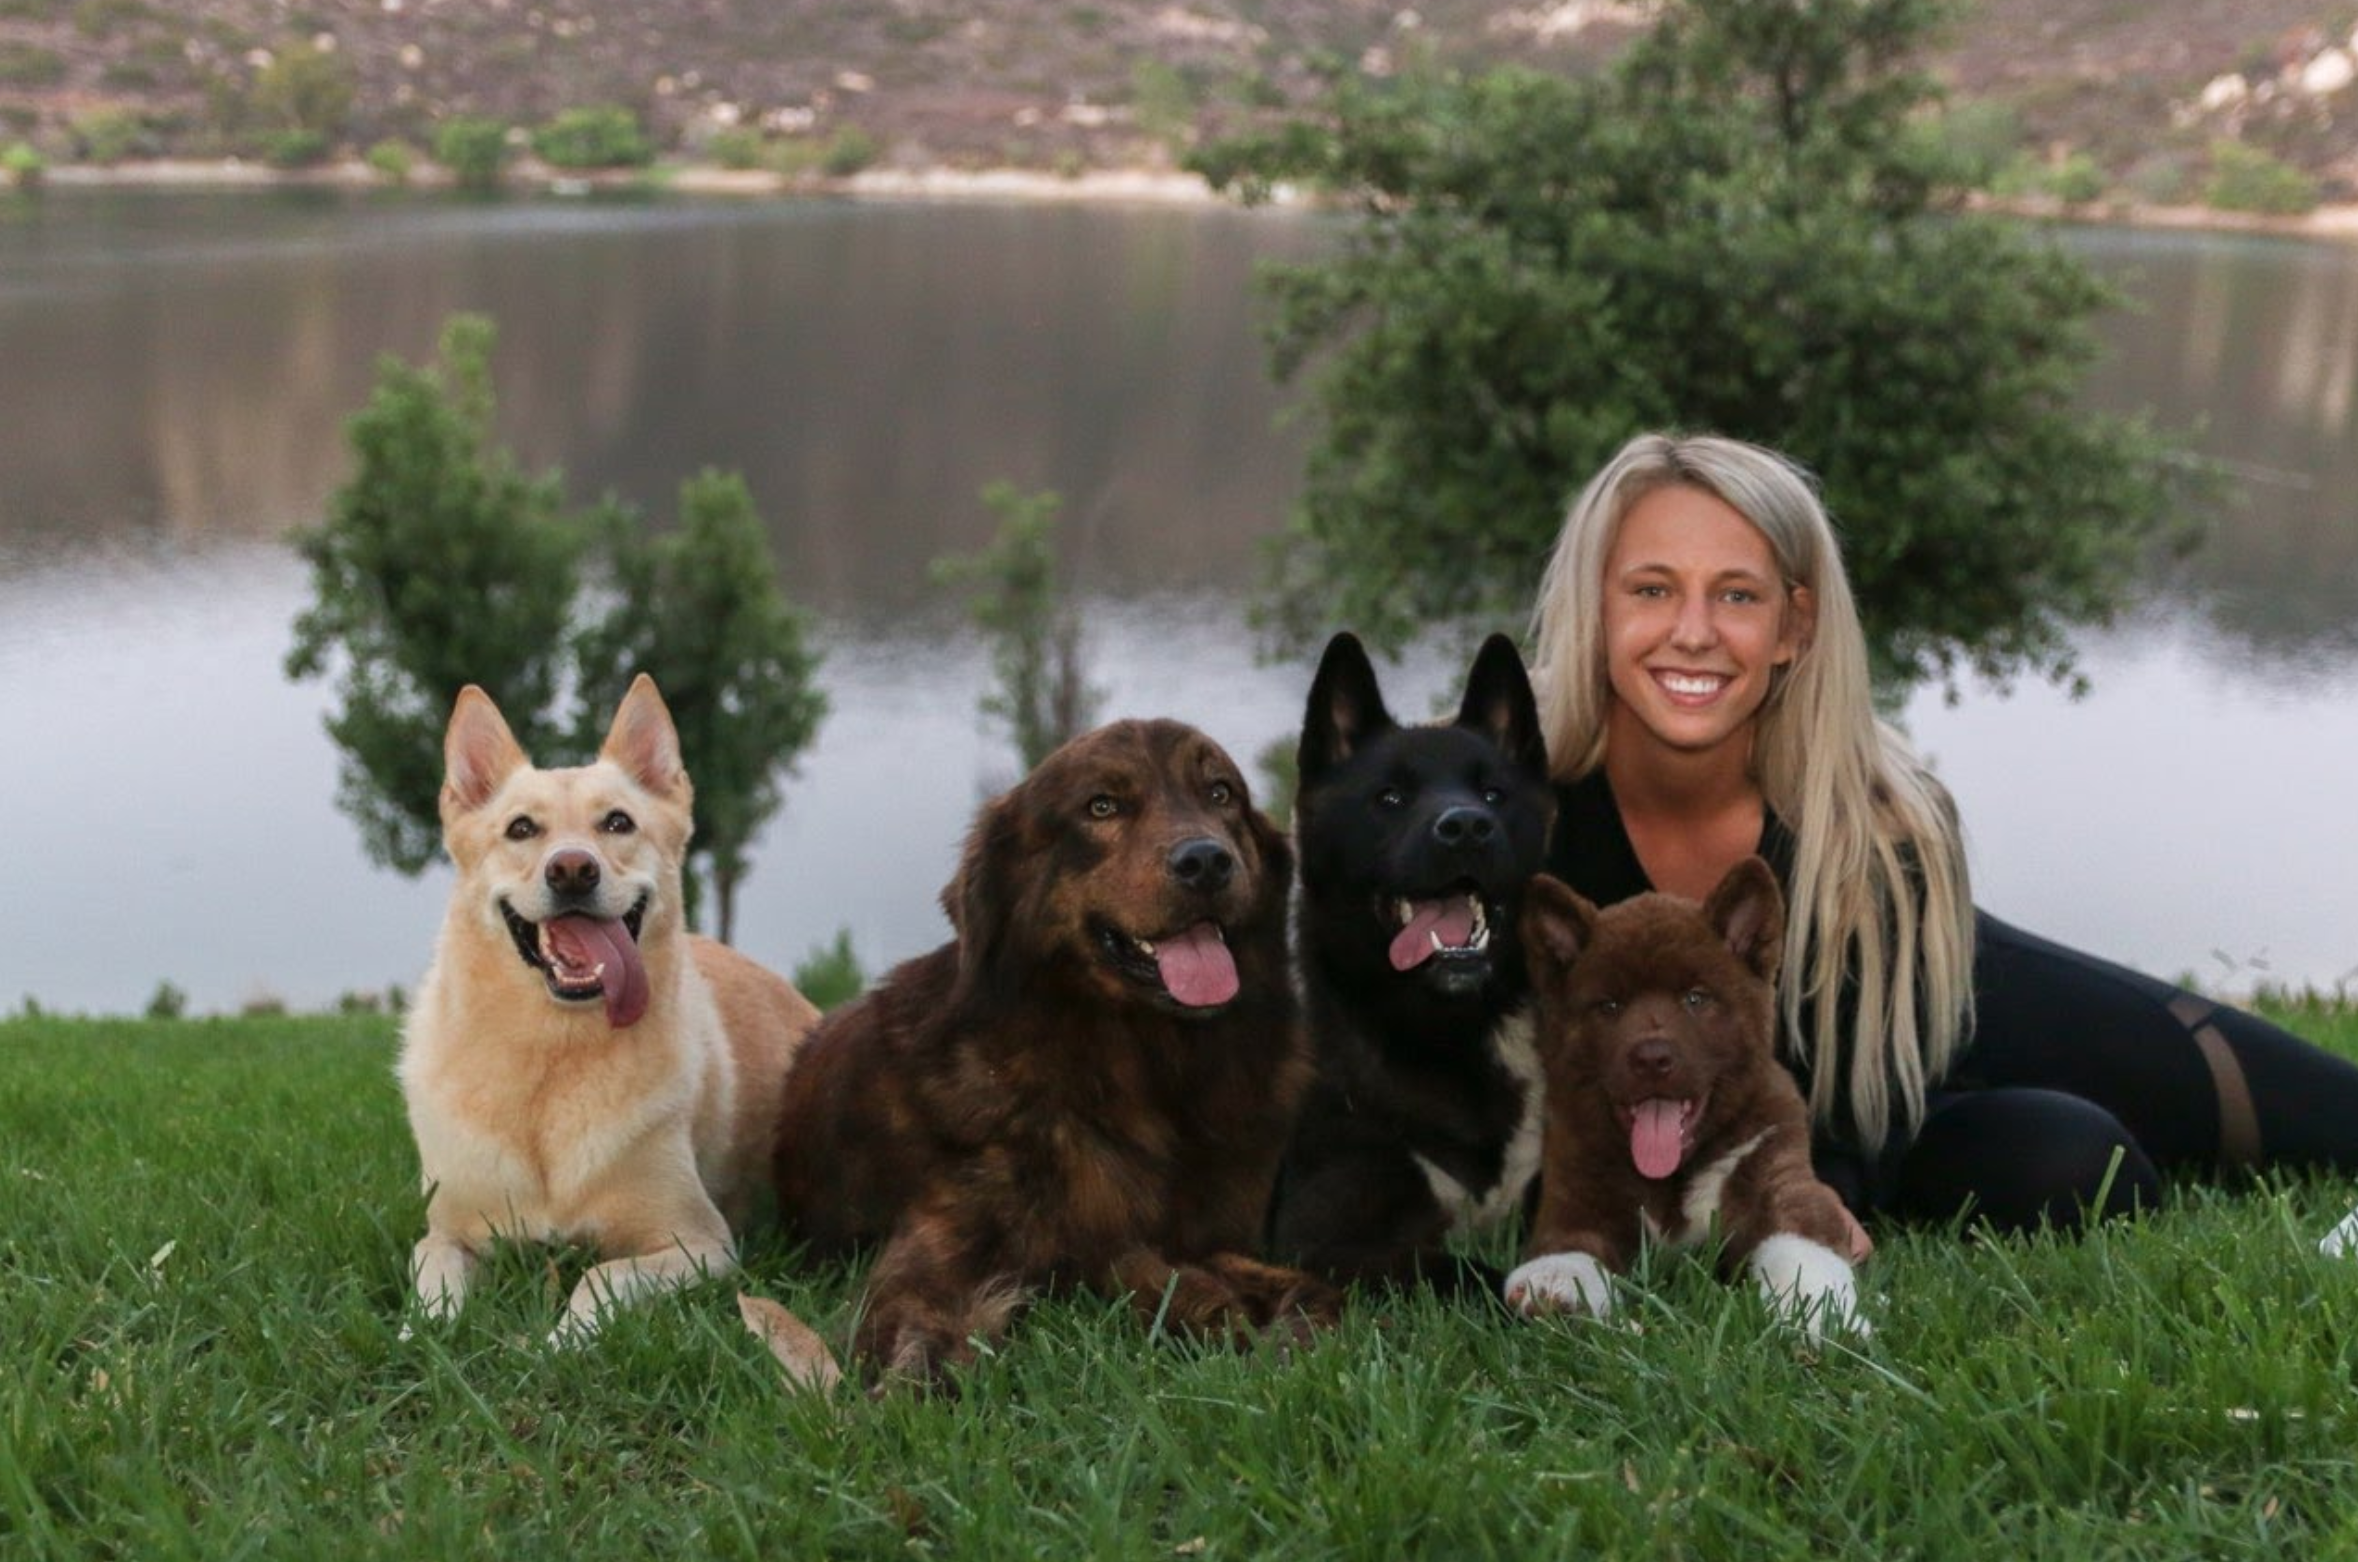 Kaelin and her pups